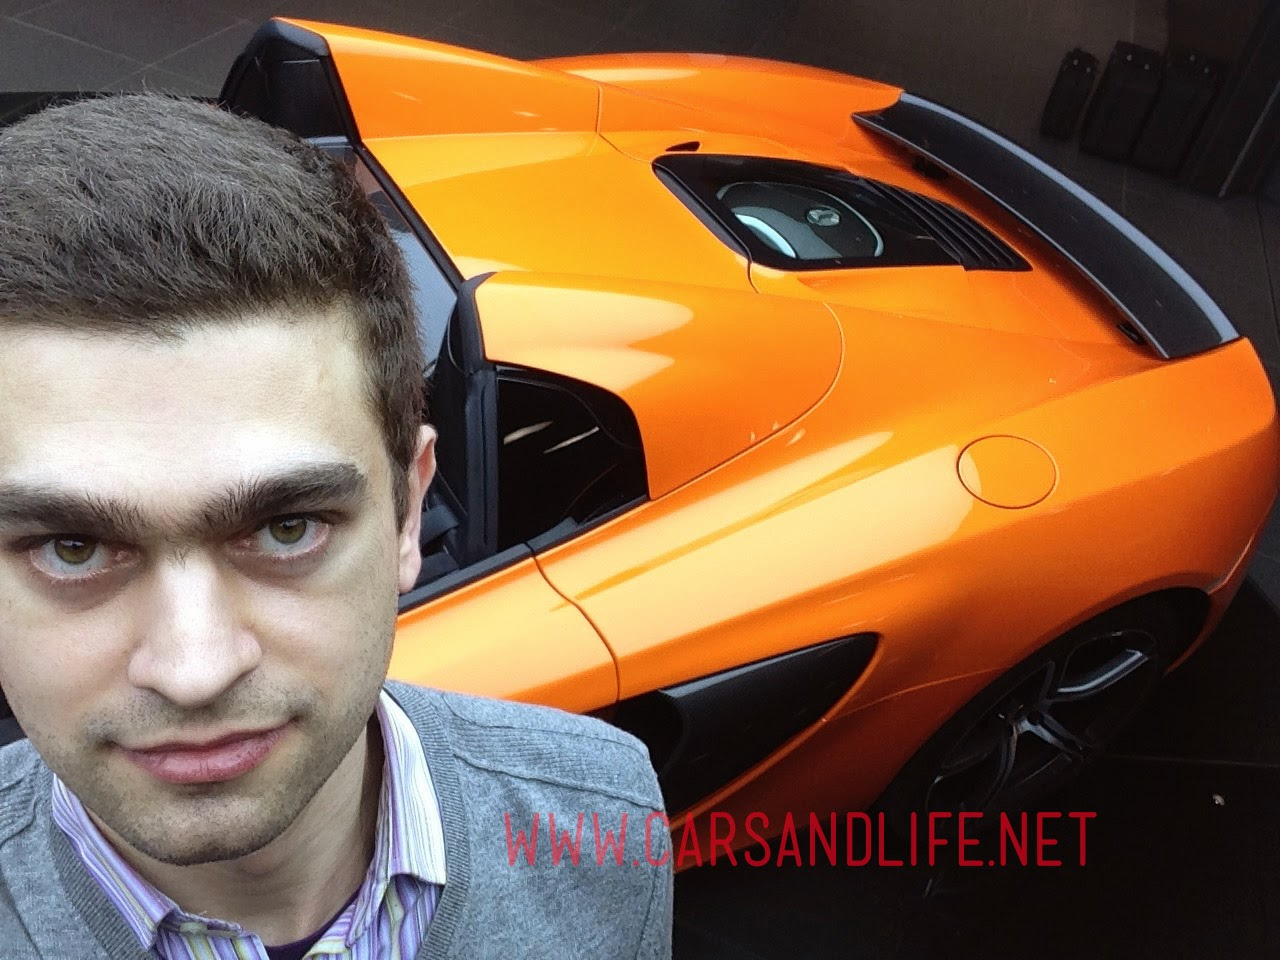 Selfie with a McLaren 650S